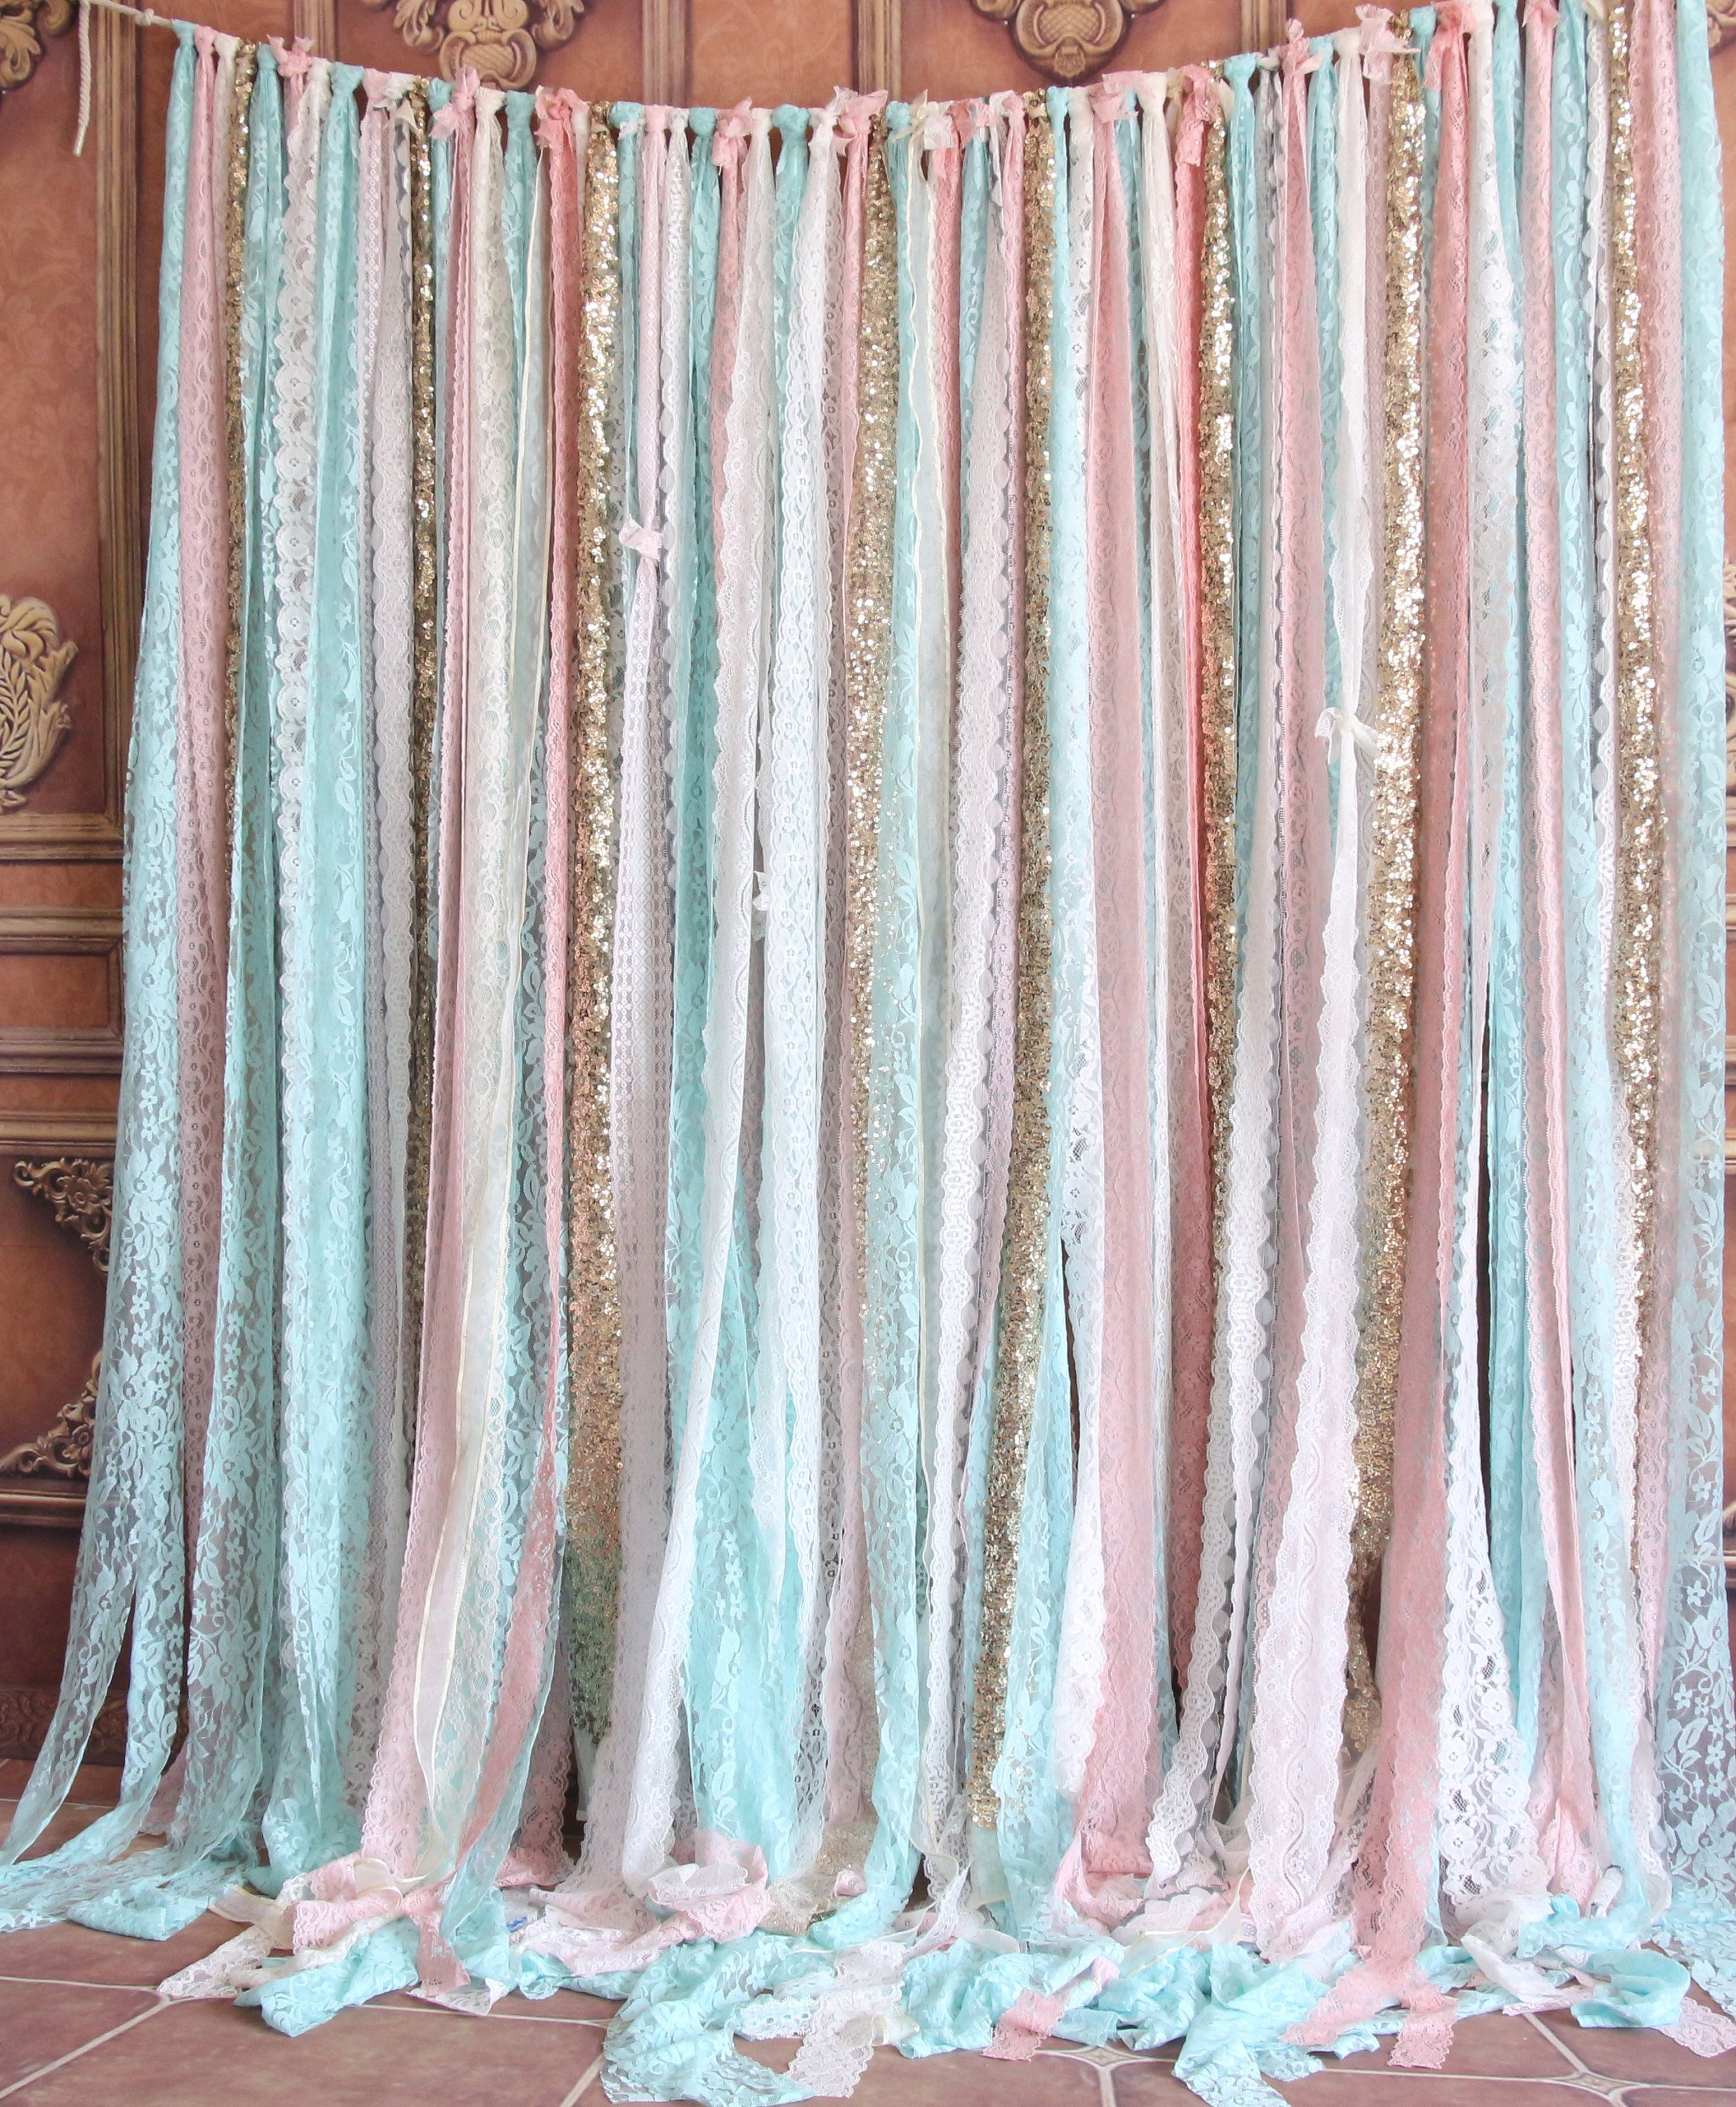 Mint Lace Fabric Pinksparkle Sequin Photo Booth Photobooth Etsy In 2020 Photo Booth Backdrop Wedding Garland Decor Curtain Backdrops